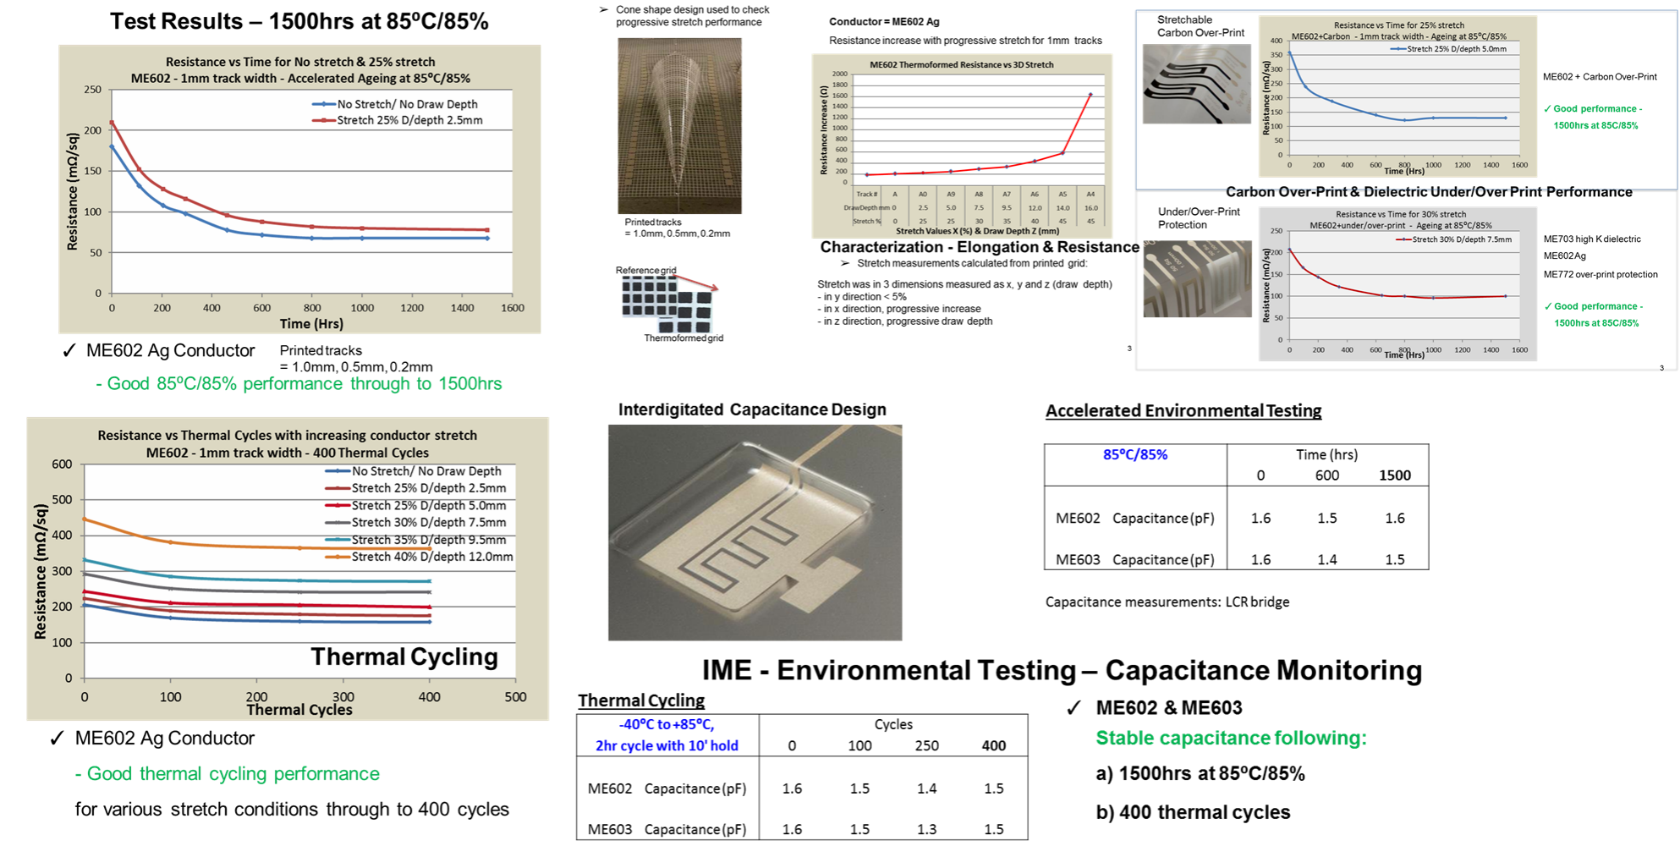 Design Hmi In Mold Electronic Application Circuits Touch Switch Flexible Hybrid Electronics Or Is A Technology Being Pursued For By All Major 100